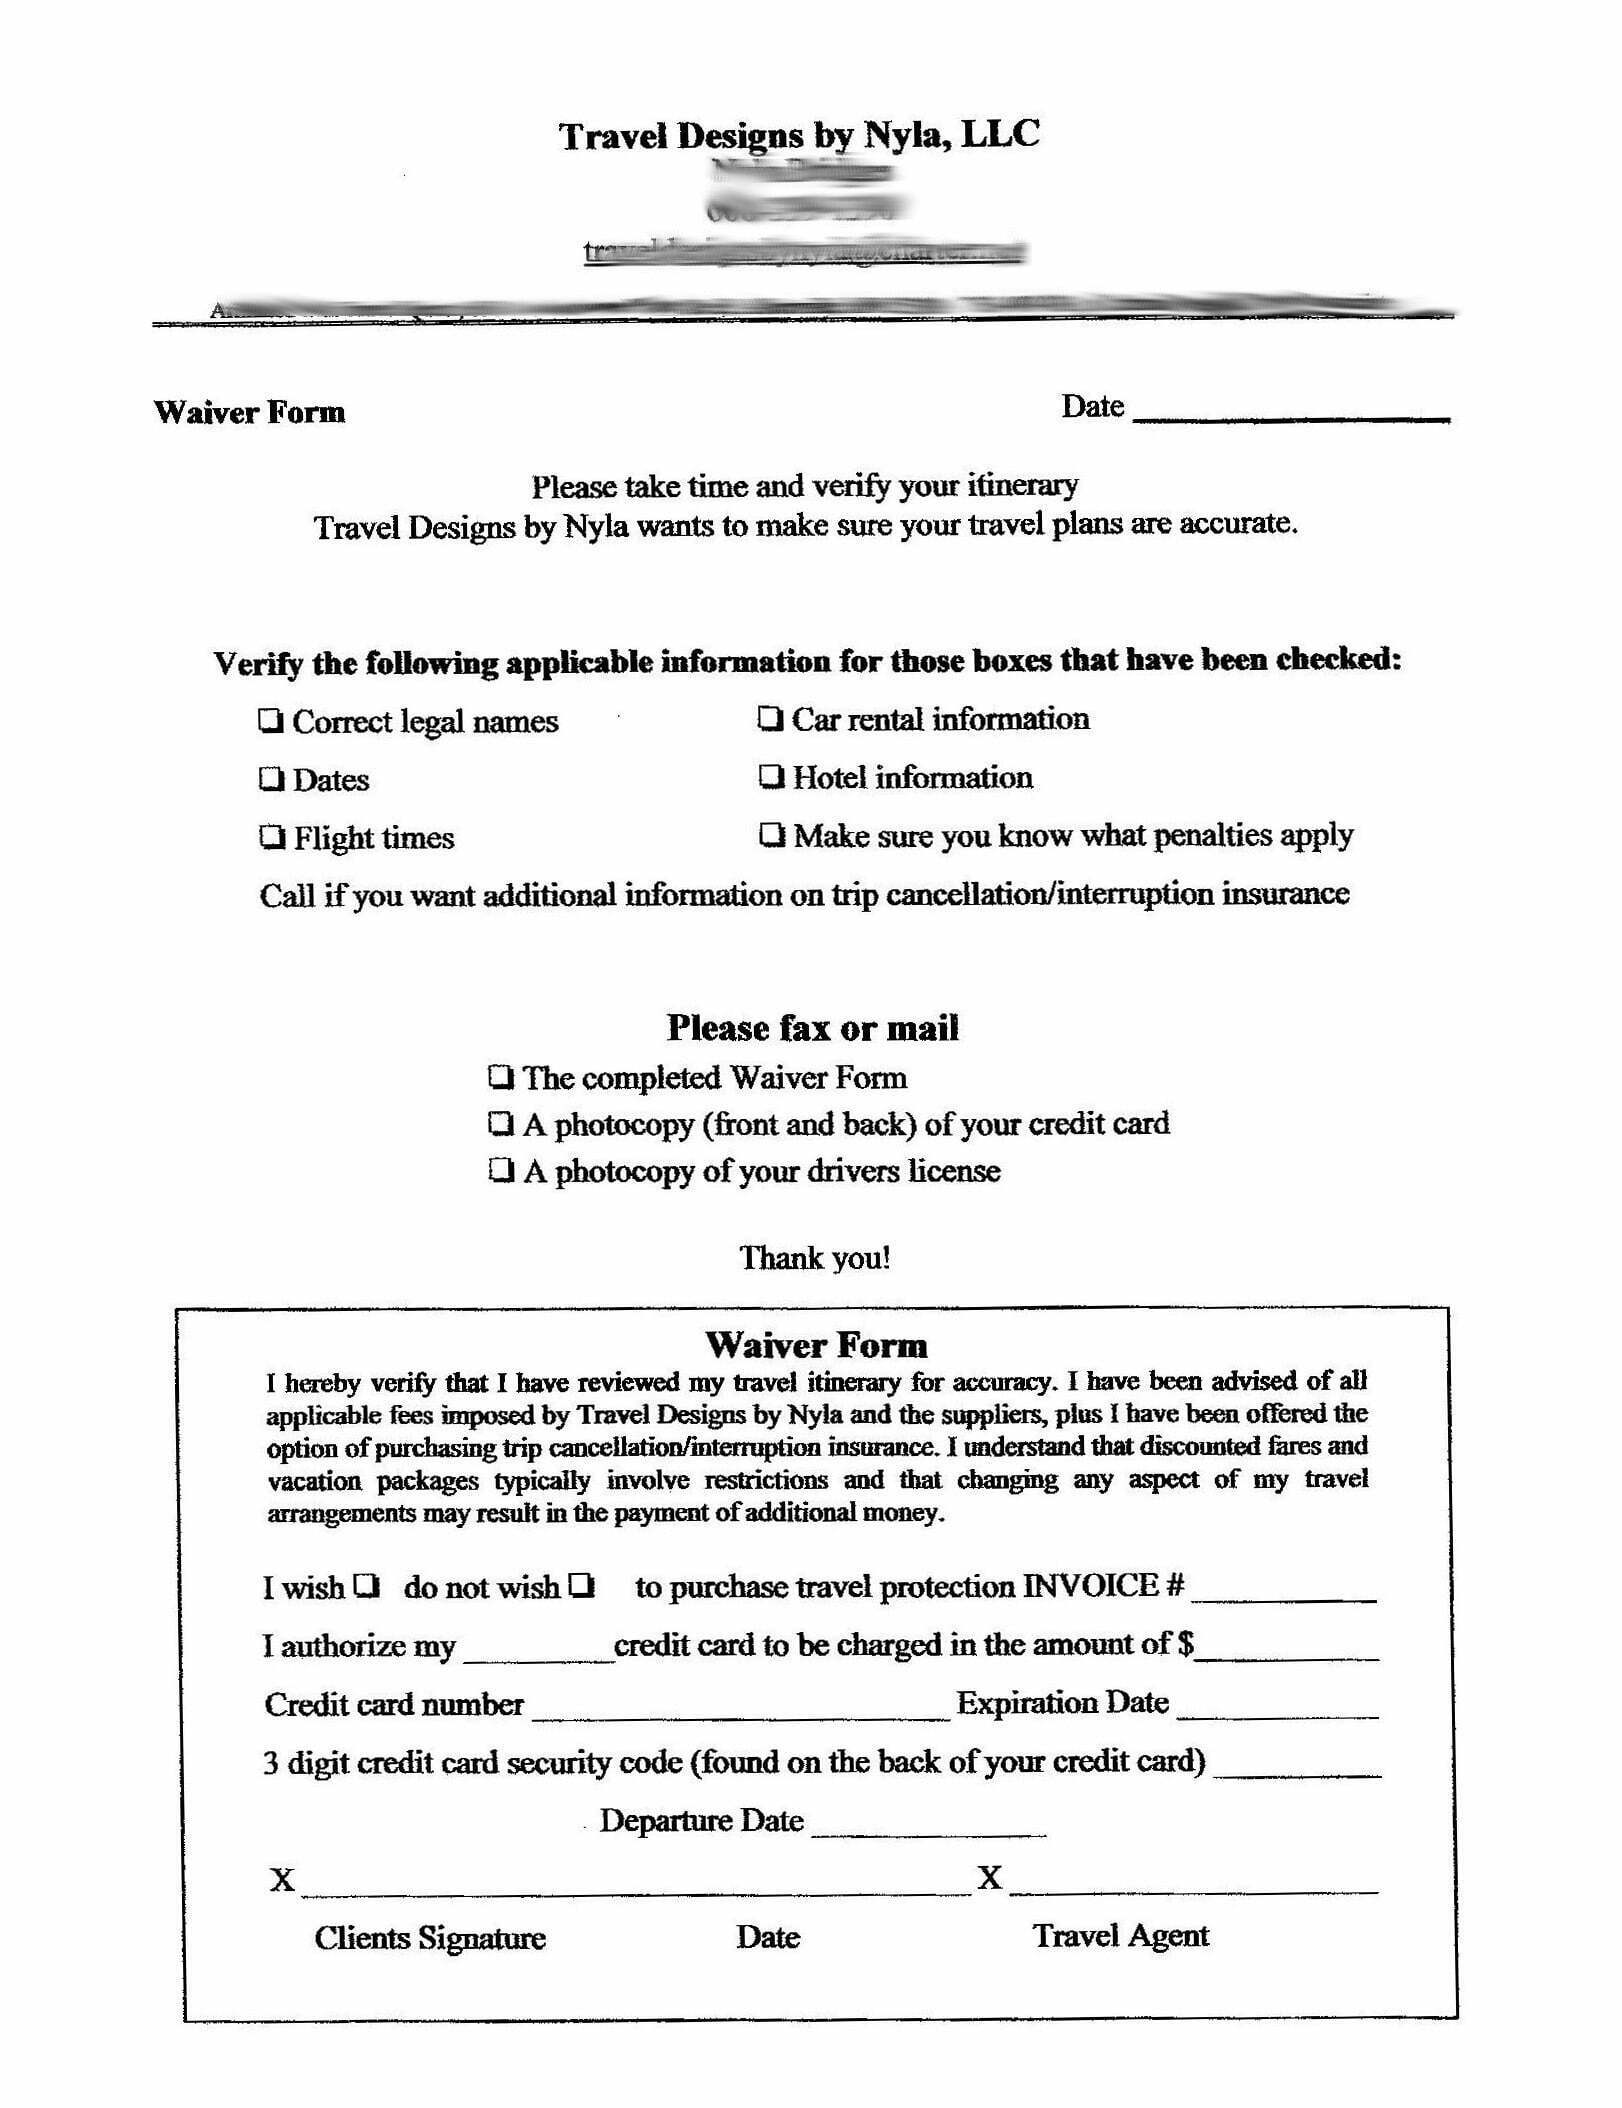 Sample Waiver Form Free Printable Documents